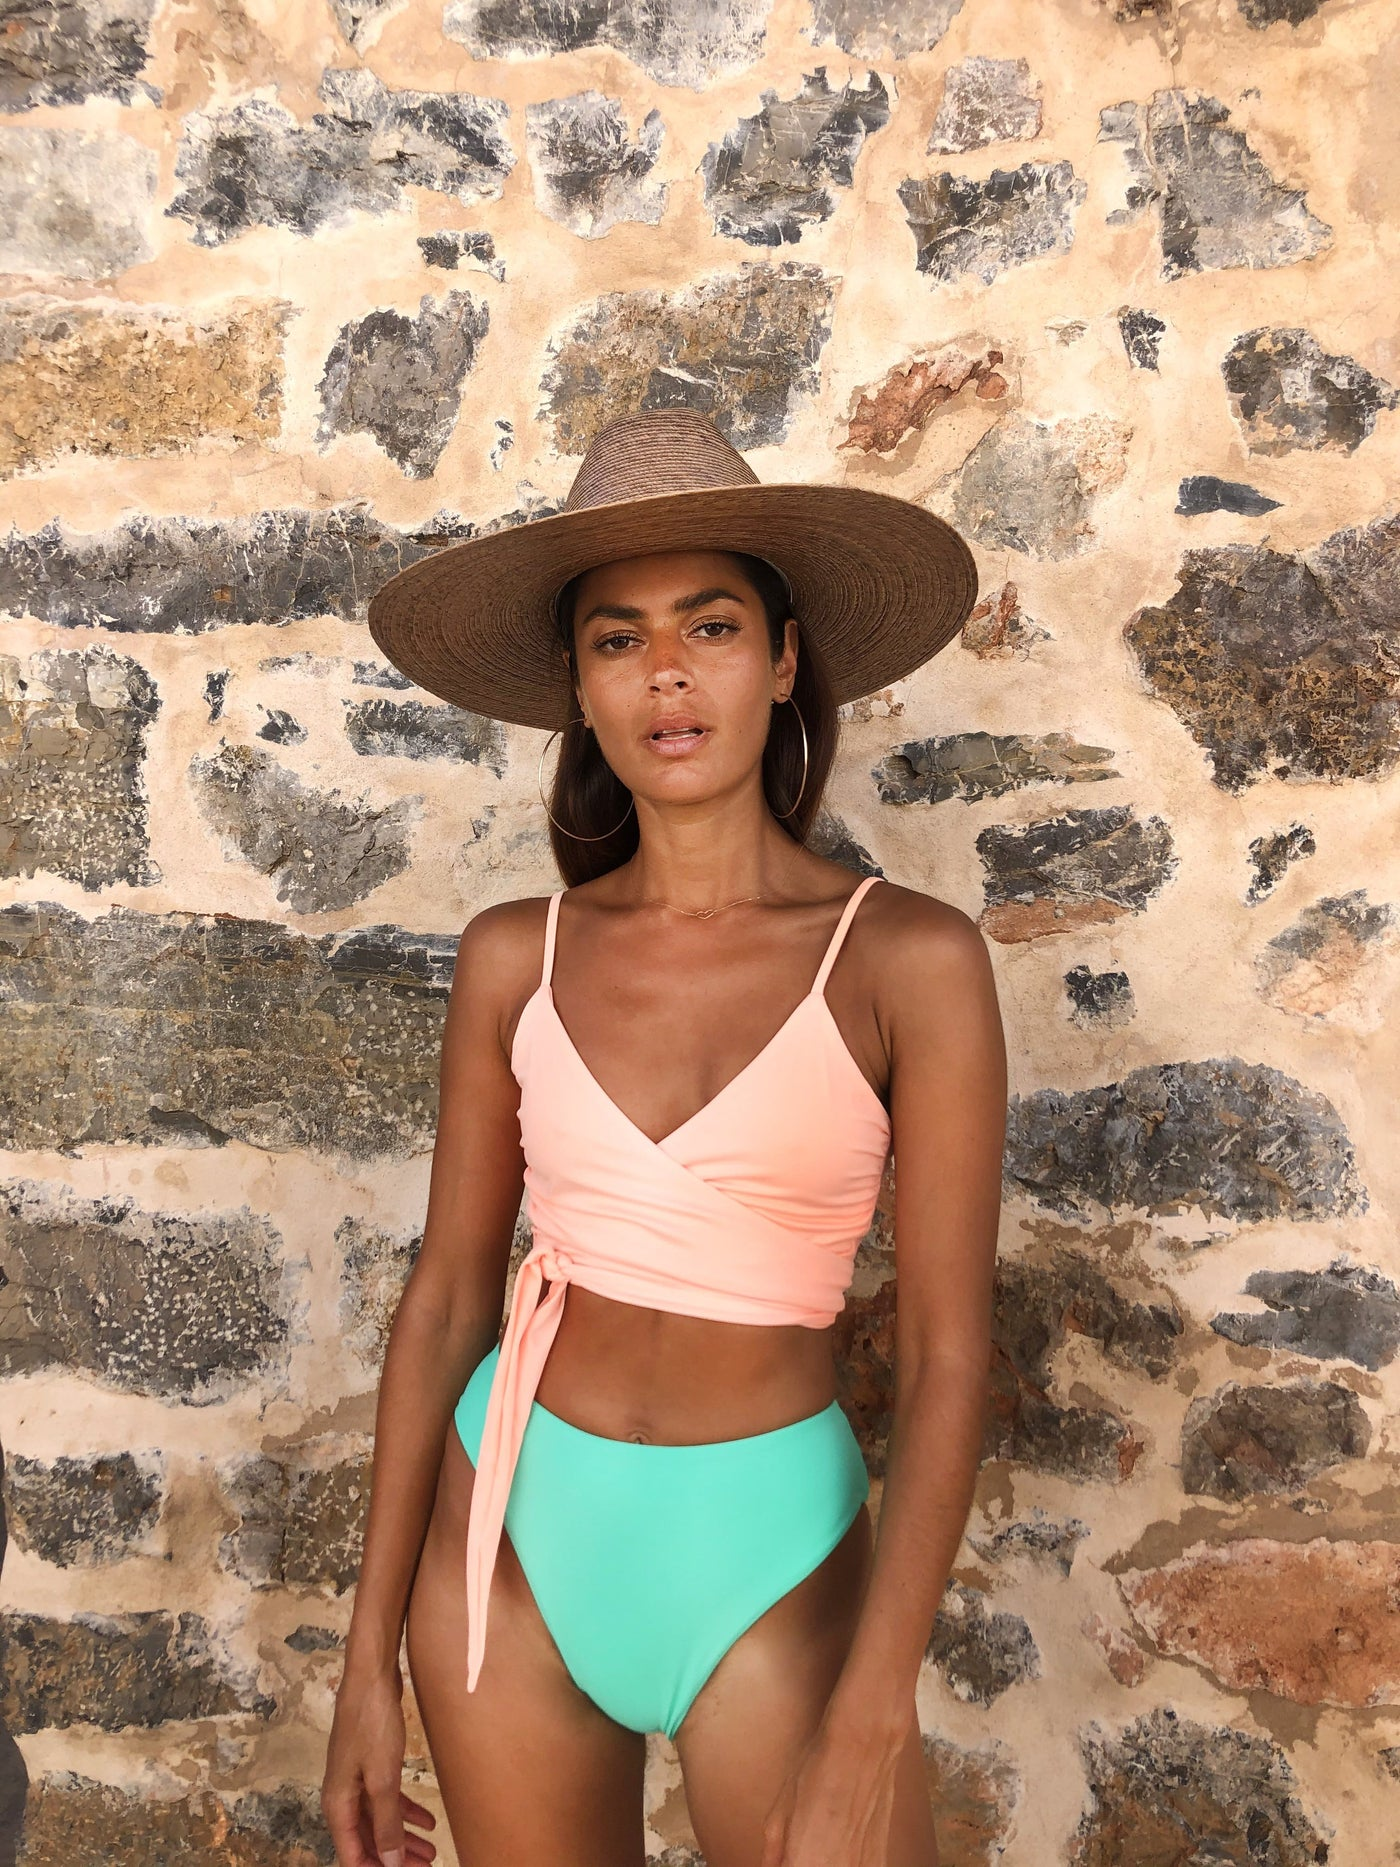 Dancing Leopard model wearing Oyster Bikini Top in peach with aqua bottoms styled with straw sunhat against brick wall